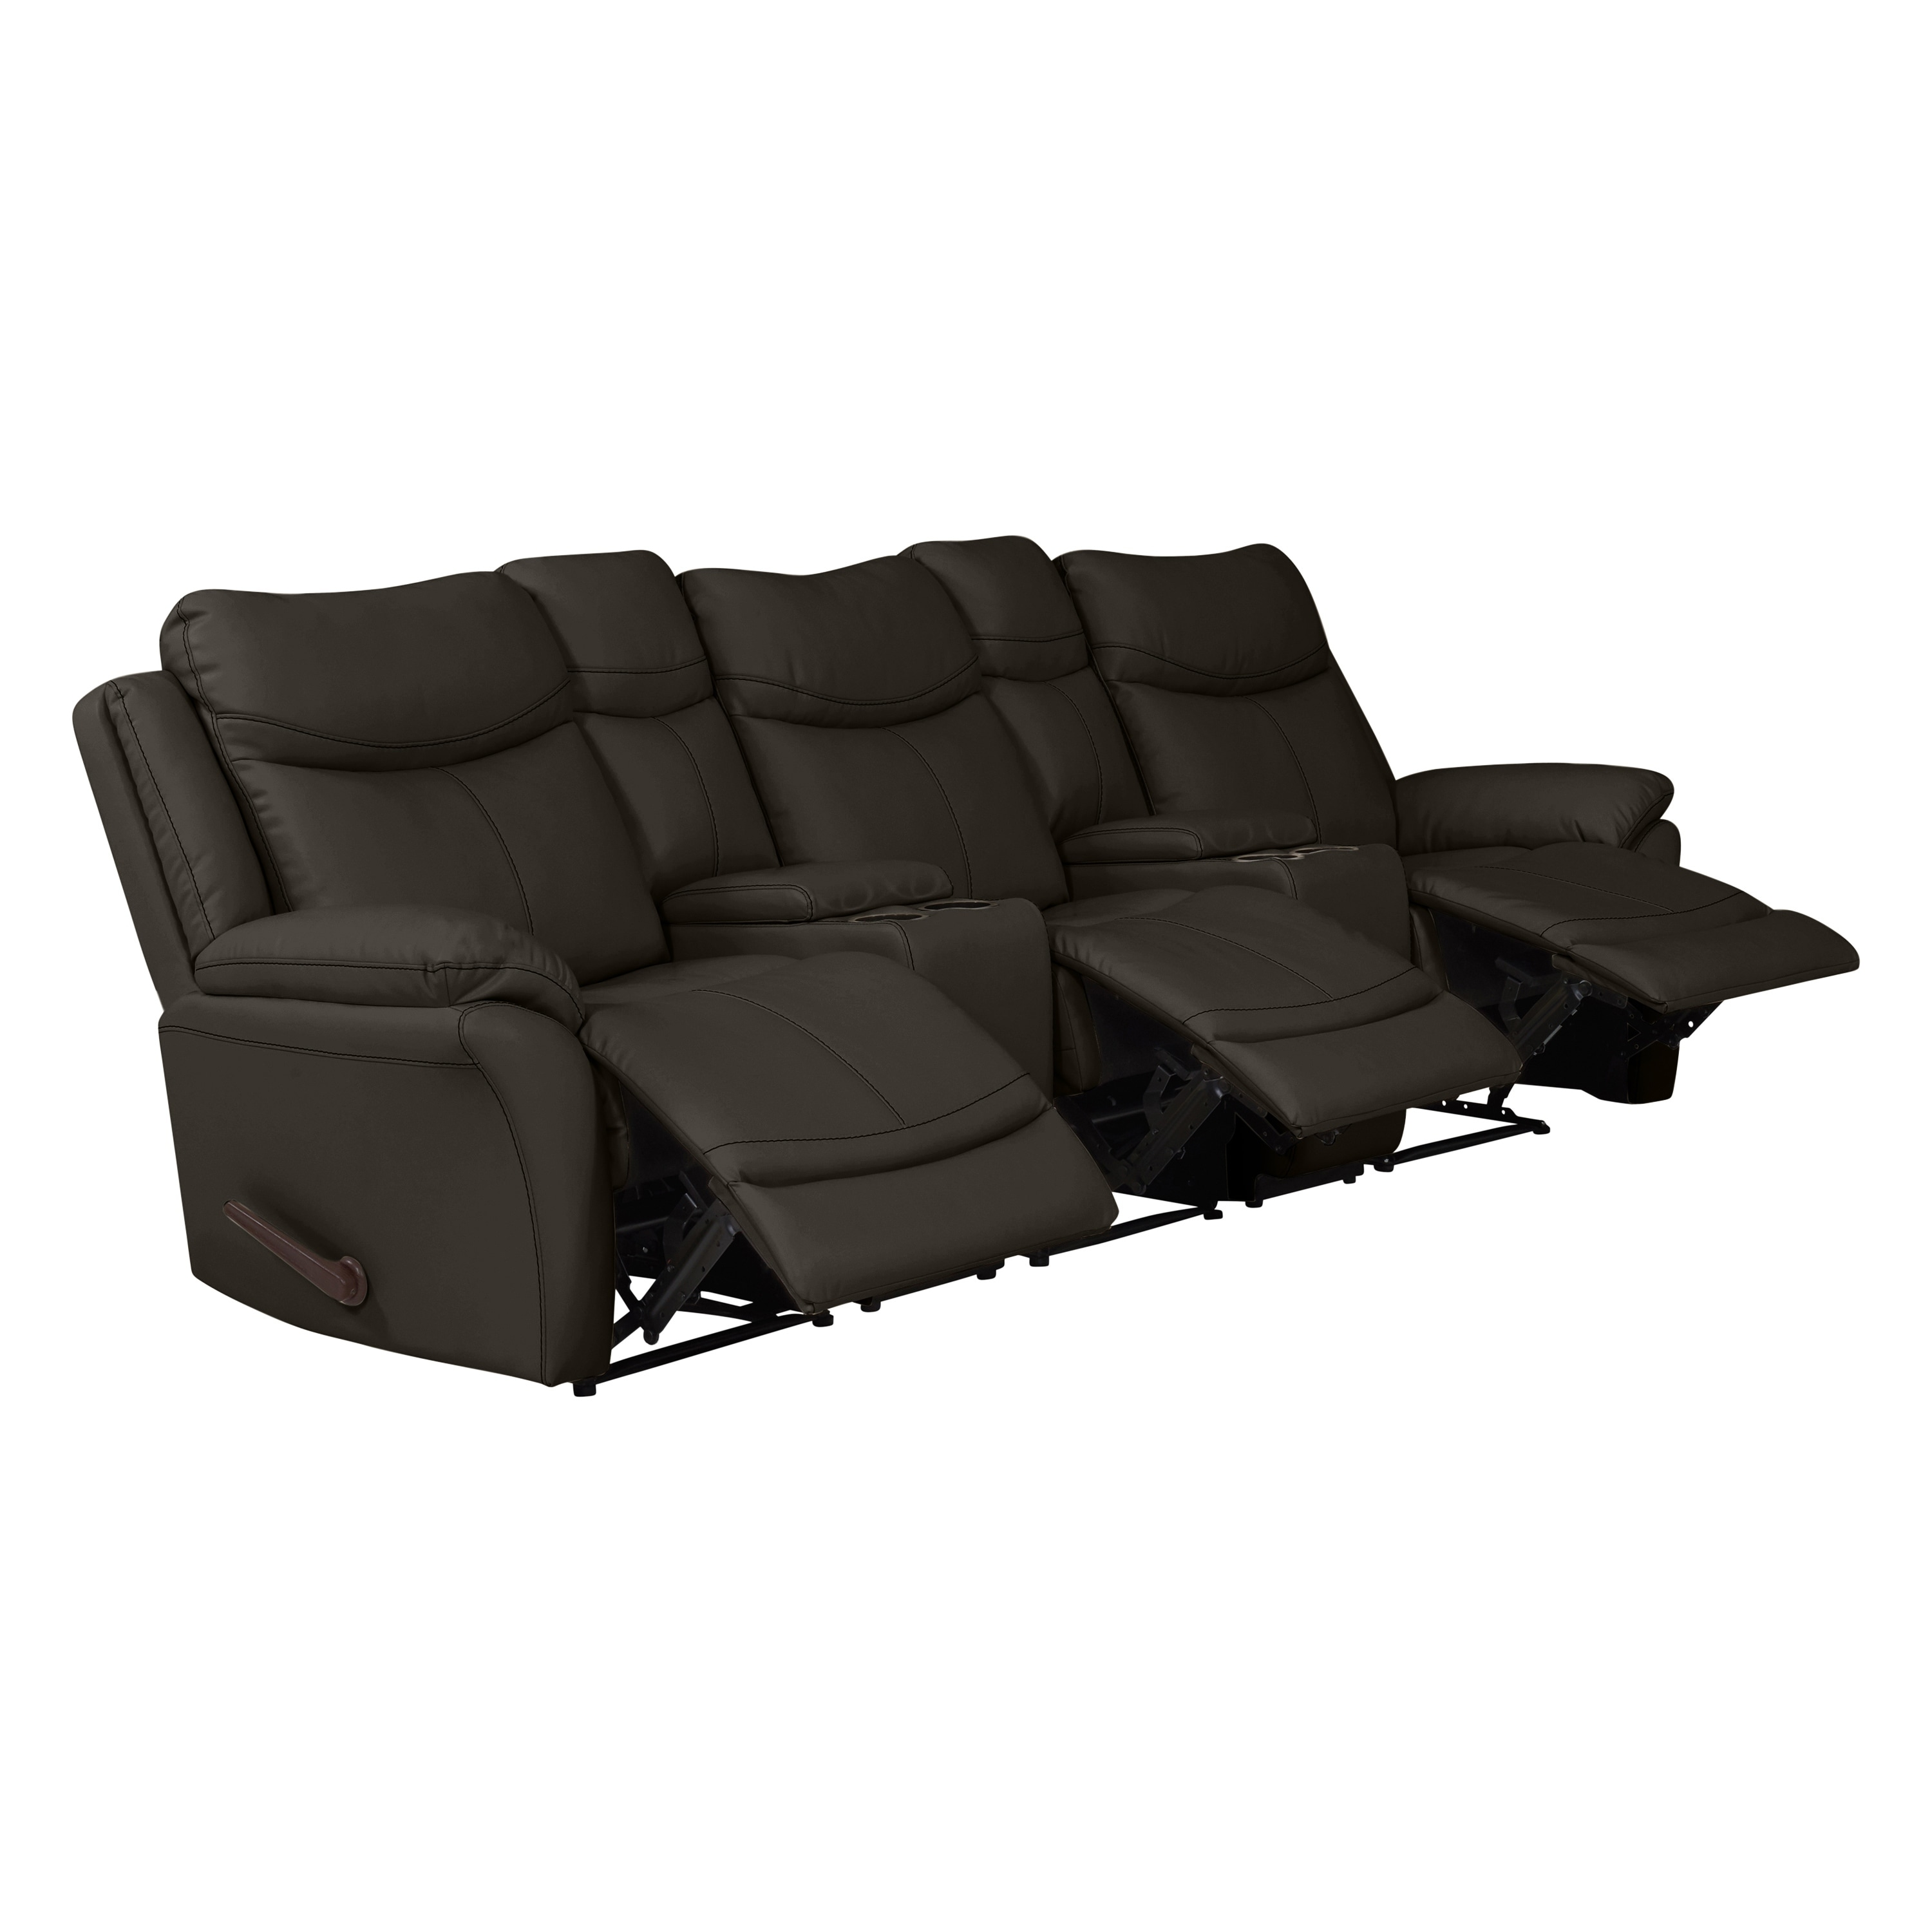 Shop Copper Grove Peqin 3-seat Faux Leather Recliner Sofa with Power ...